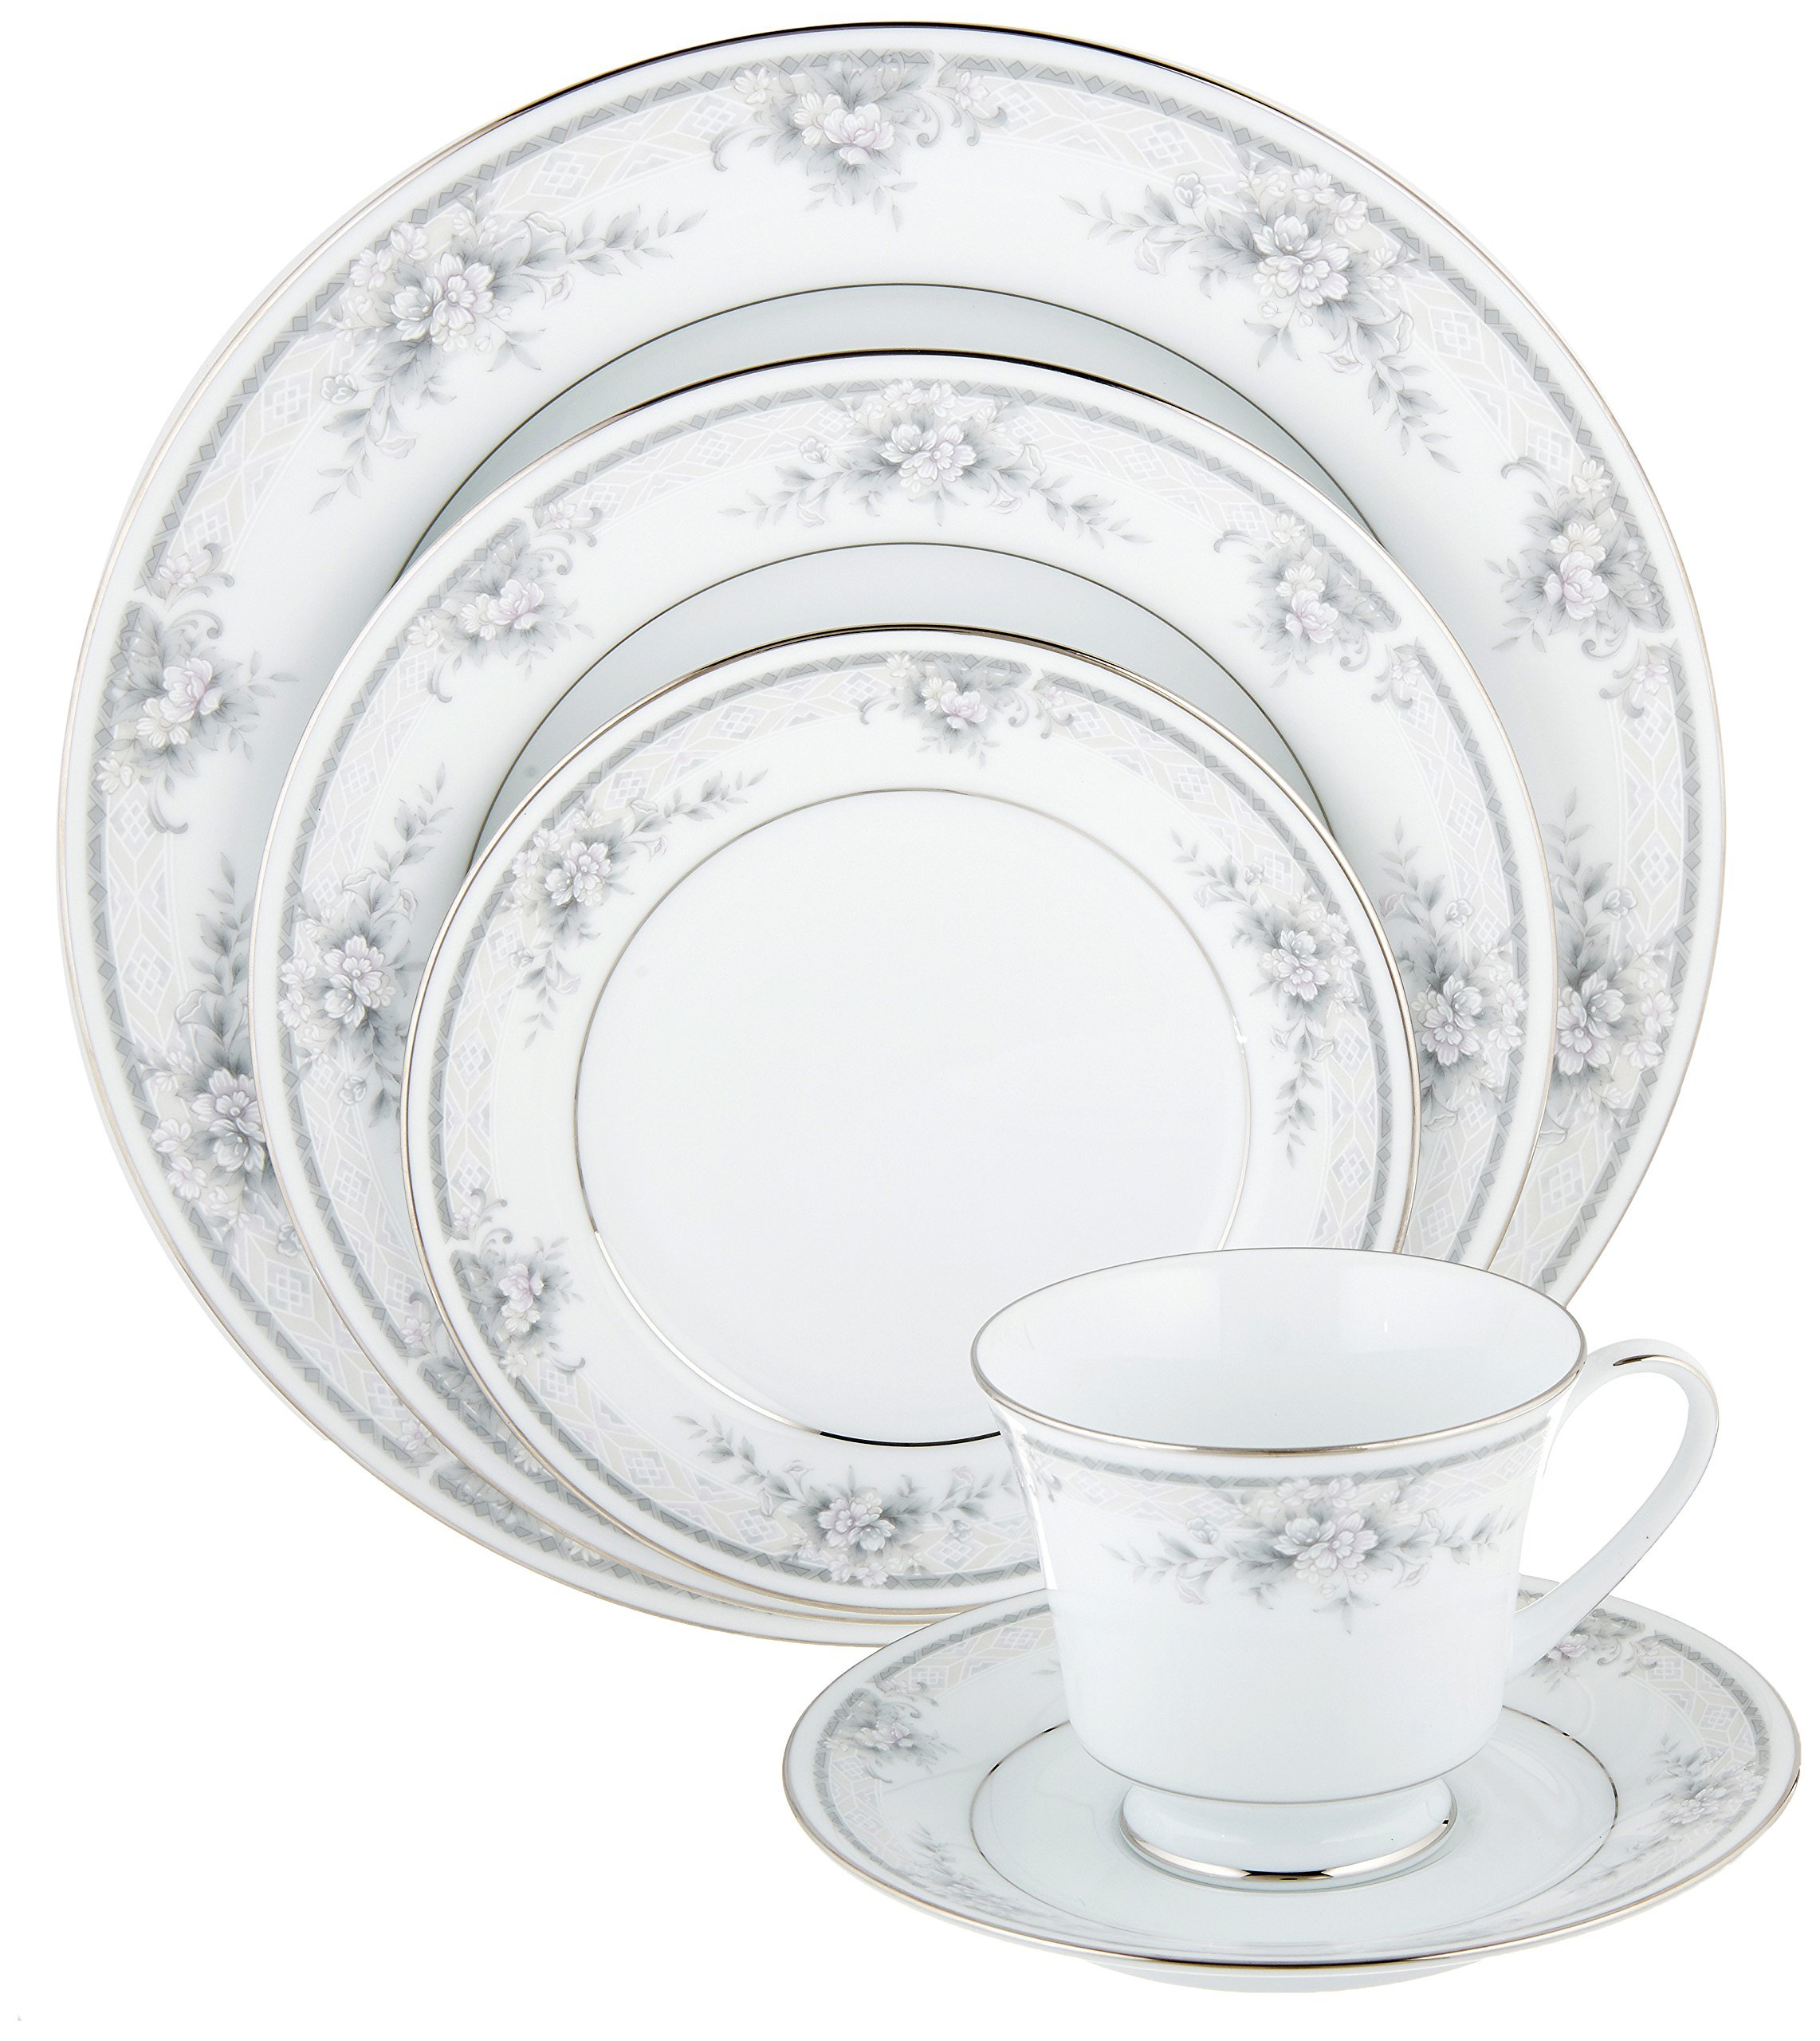 Noritake Sweet Leilani - 5 piece place setting - Beautifully translucent white porcelain china Timeless classic simplicity to last a lifetime Elegant, formal design but durable enough for everyday use - kitchen-tabletop, kitchen-dining-room, dinnerware-sets - 91NPFi%2B%2BICL -